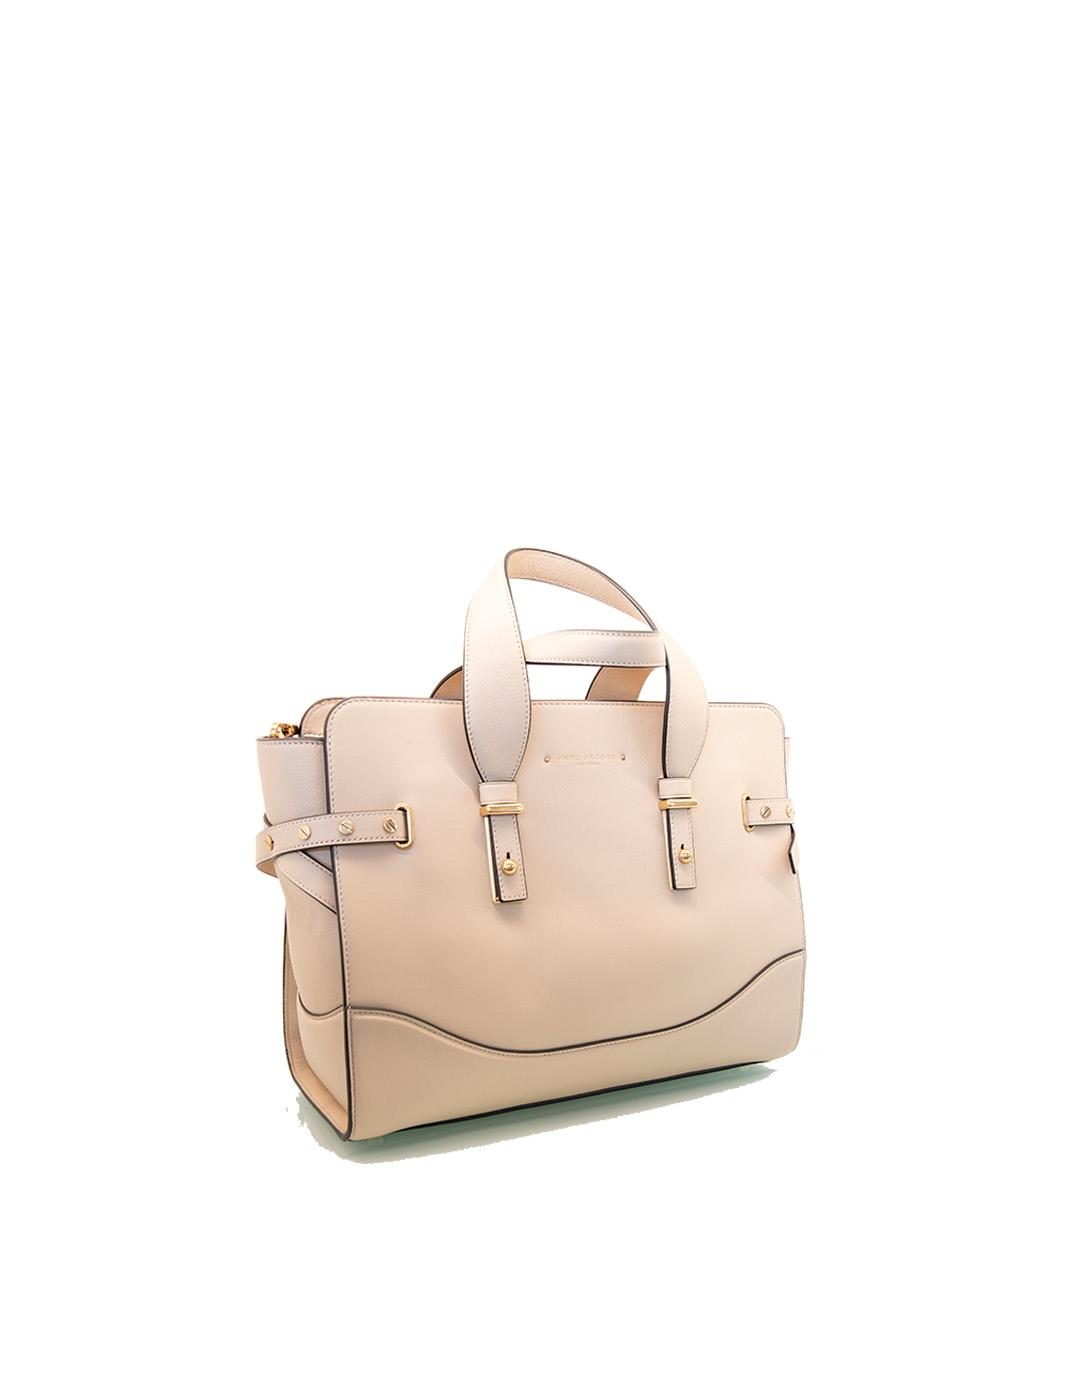 Bolso Marc Jacobs beige The Rivet Tote